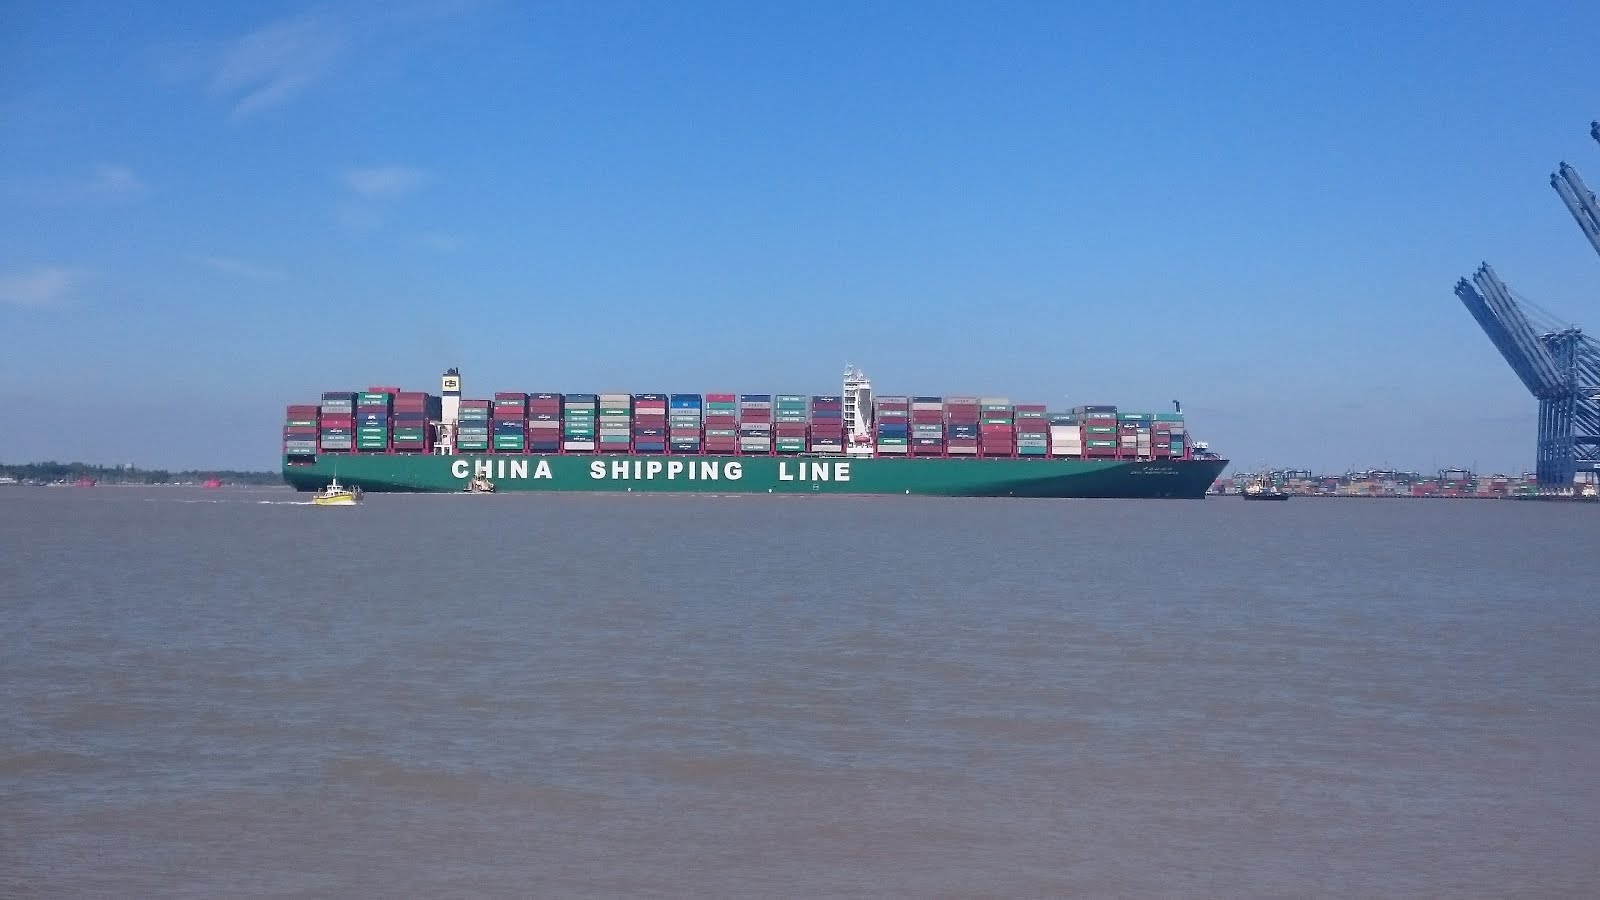 CSCL Arctic Ocean Arriving at the Port of Felixstowe 10th May 2017